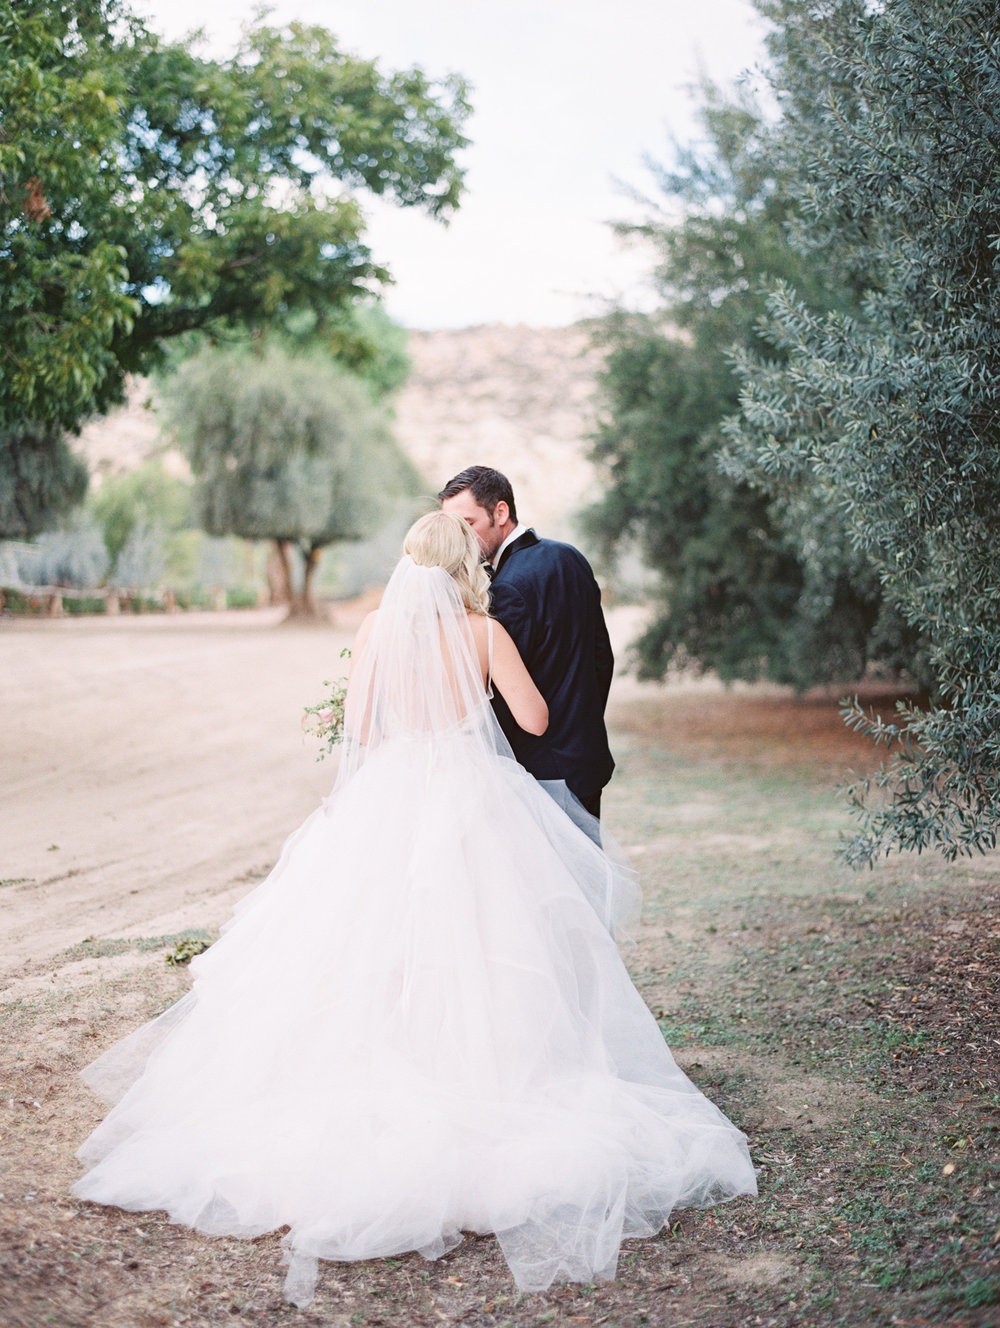 MALLORY DAWN PHOTO  |  OLIVE GROVE DREAMY SHOOT  |  PIROUETTE PAPER  |  INVITATION SUITE, CALLIGRAPHY, MENU AND PLACE CARDS  |  FALL WEDDING